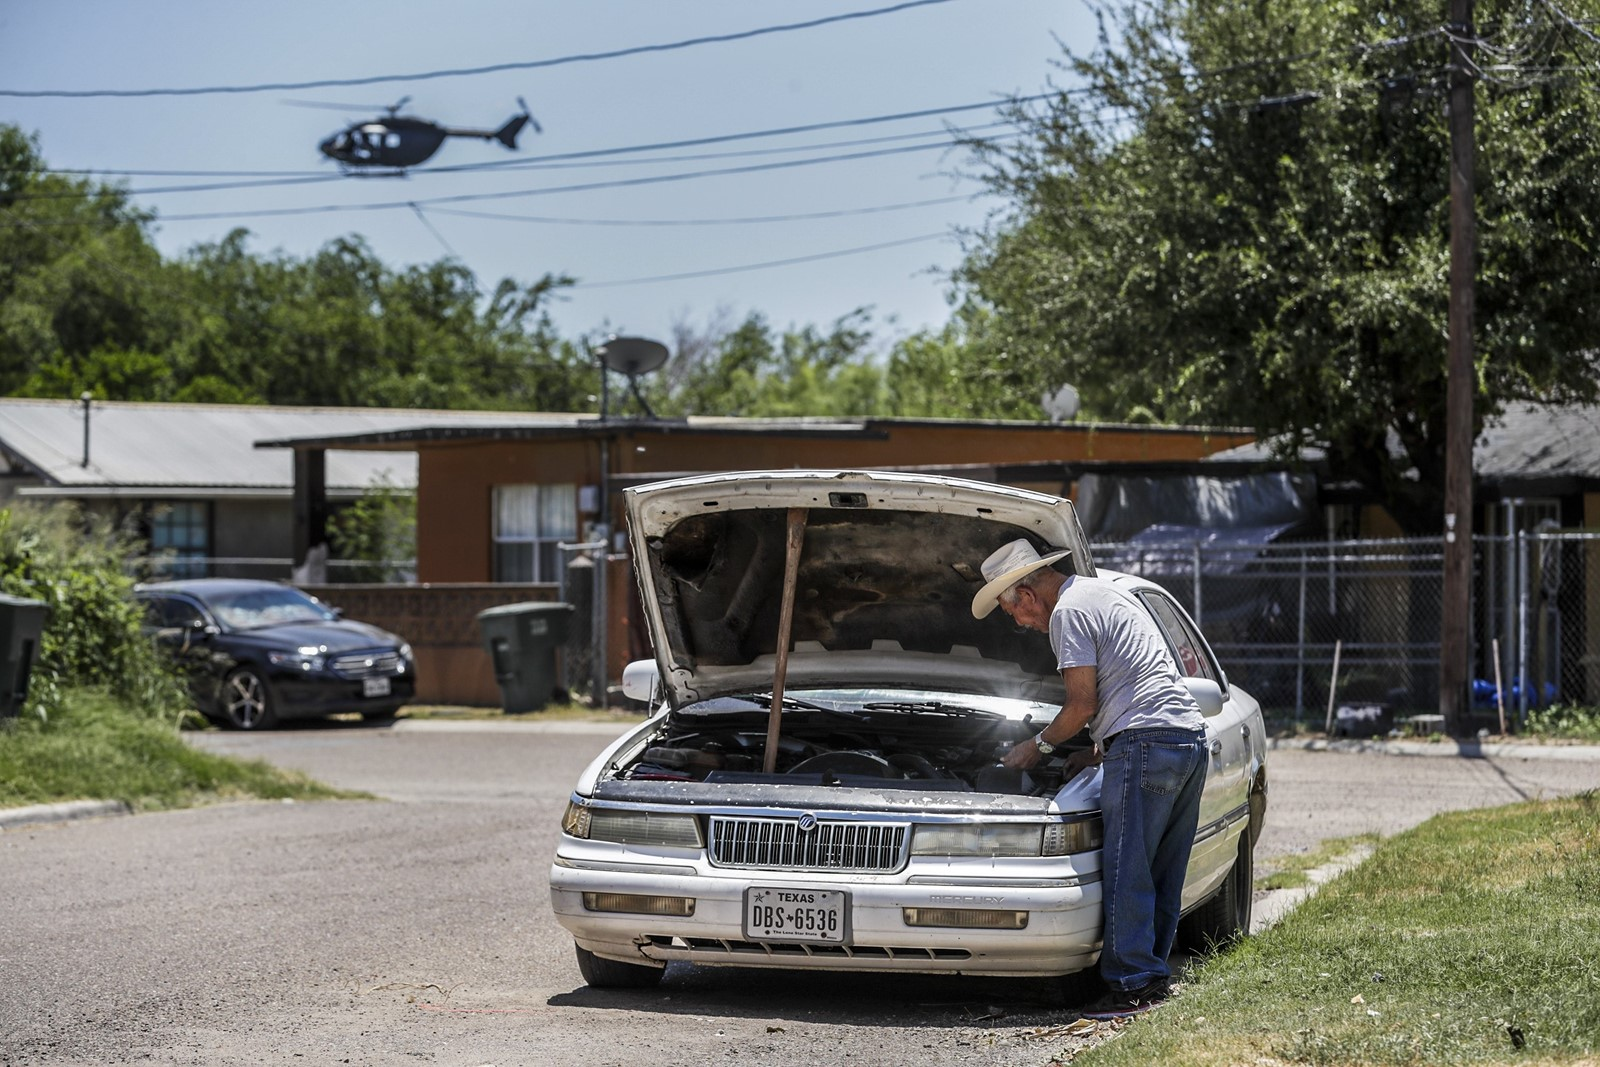 Juan Silva of Roma, Texas, works on a car as a Border Patrol helicopter searches for immigrants in the town along the Rio Grande. — Photograph: Robert Gauthier/Los Angeles Times.